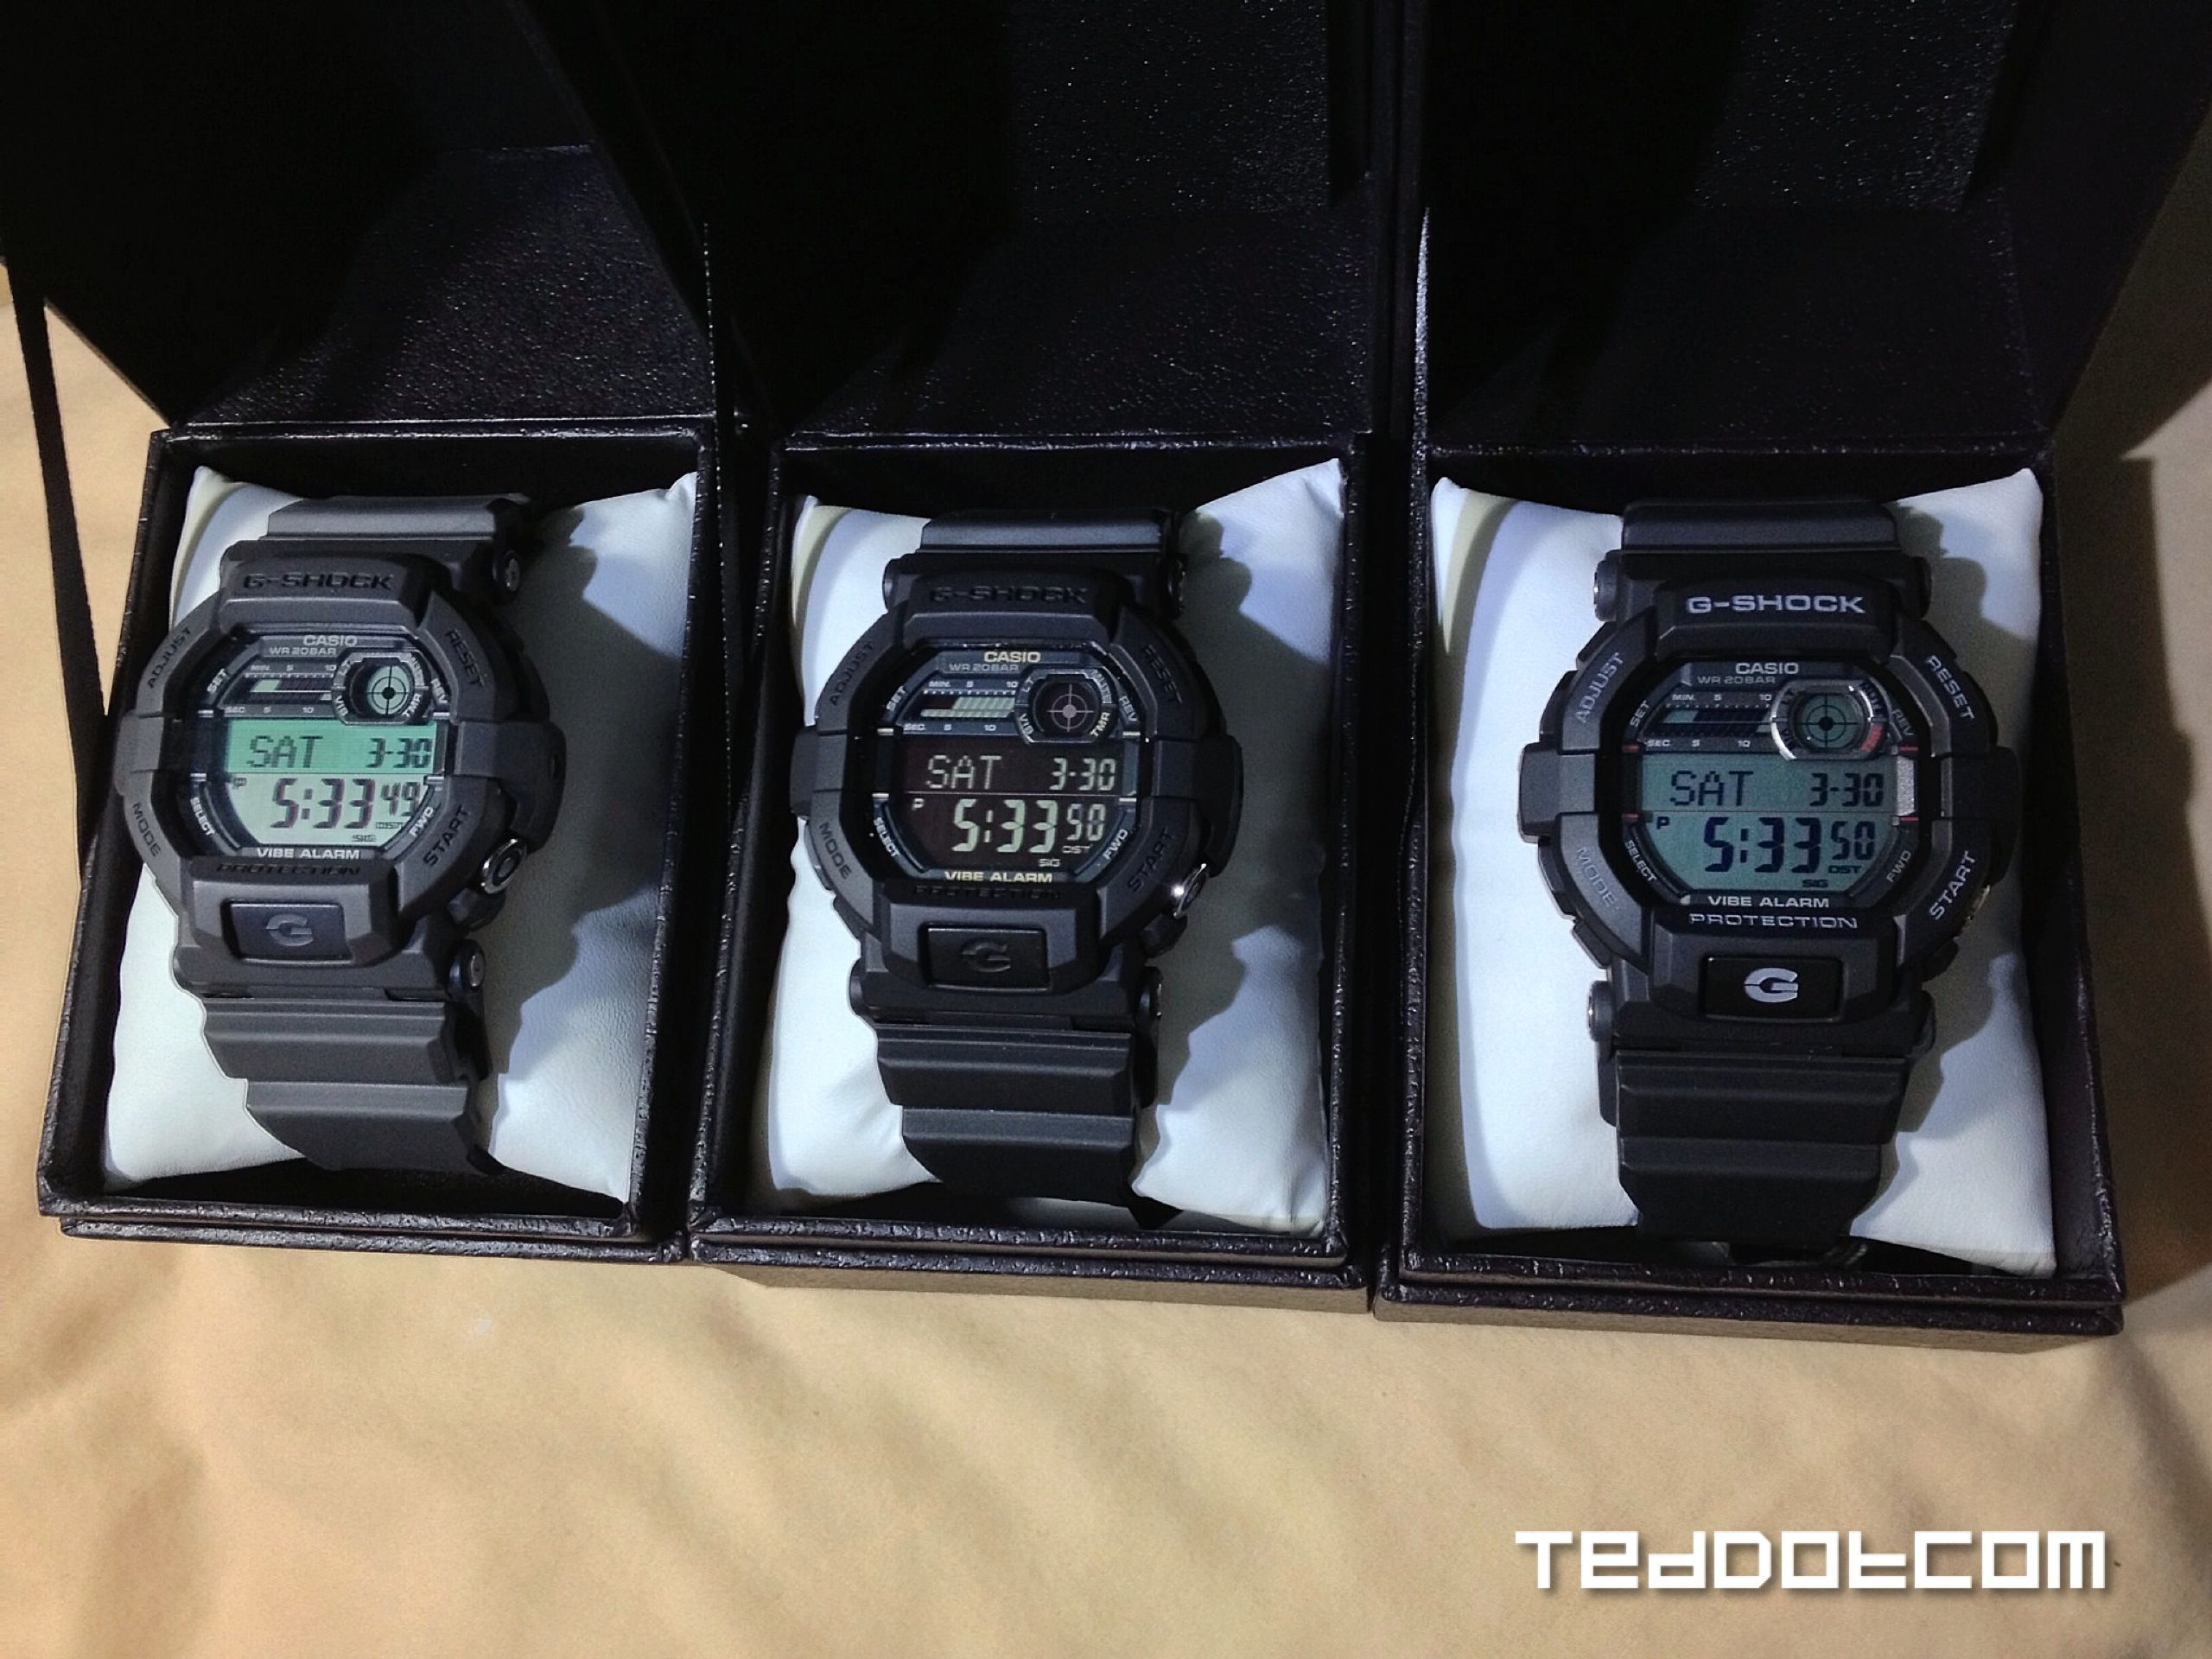 The First Trilogy Of Gd 350s Casio G Shock Or Pathfinder Gshock Original 100ms 3er Limited Colorway